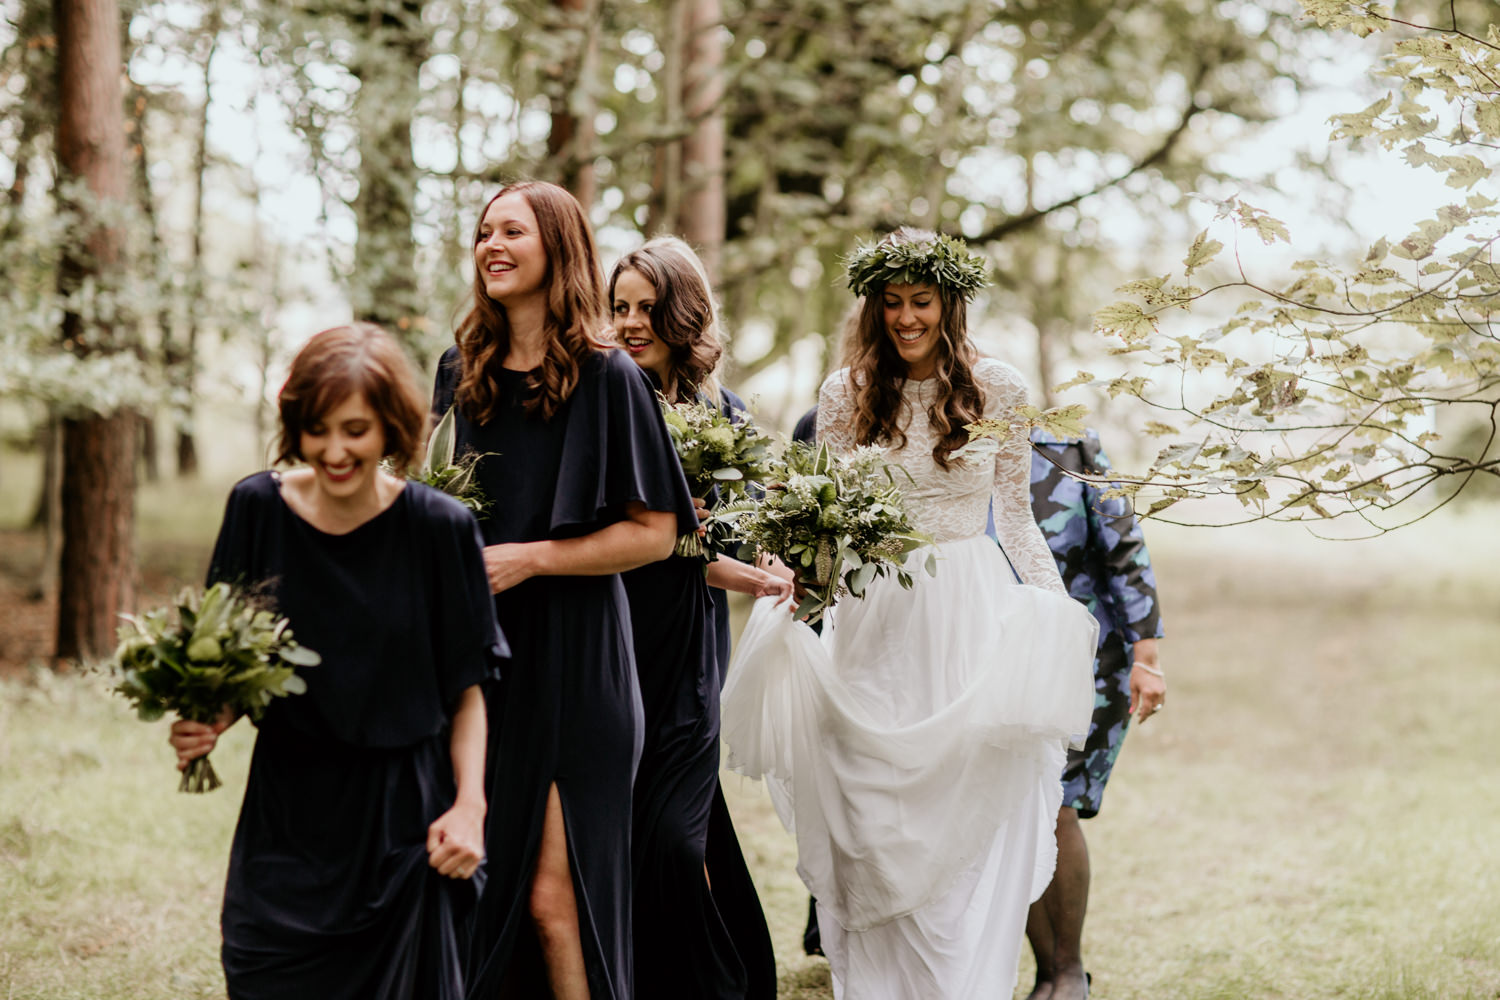 bride walking with bridesmaids before the outdoor wedding ceremony at Harvest Moon Holidays Scotland